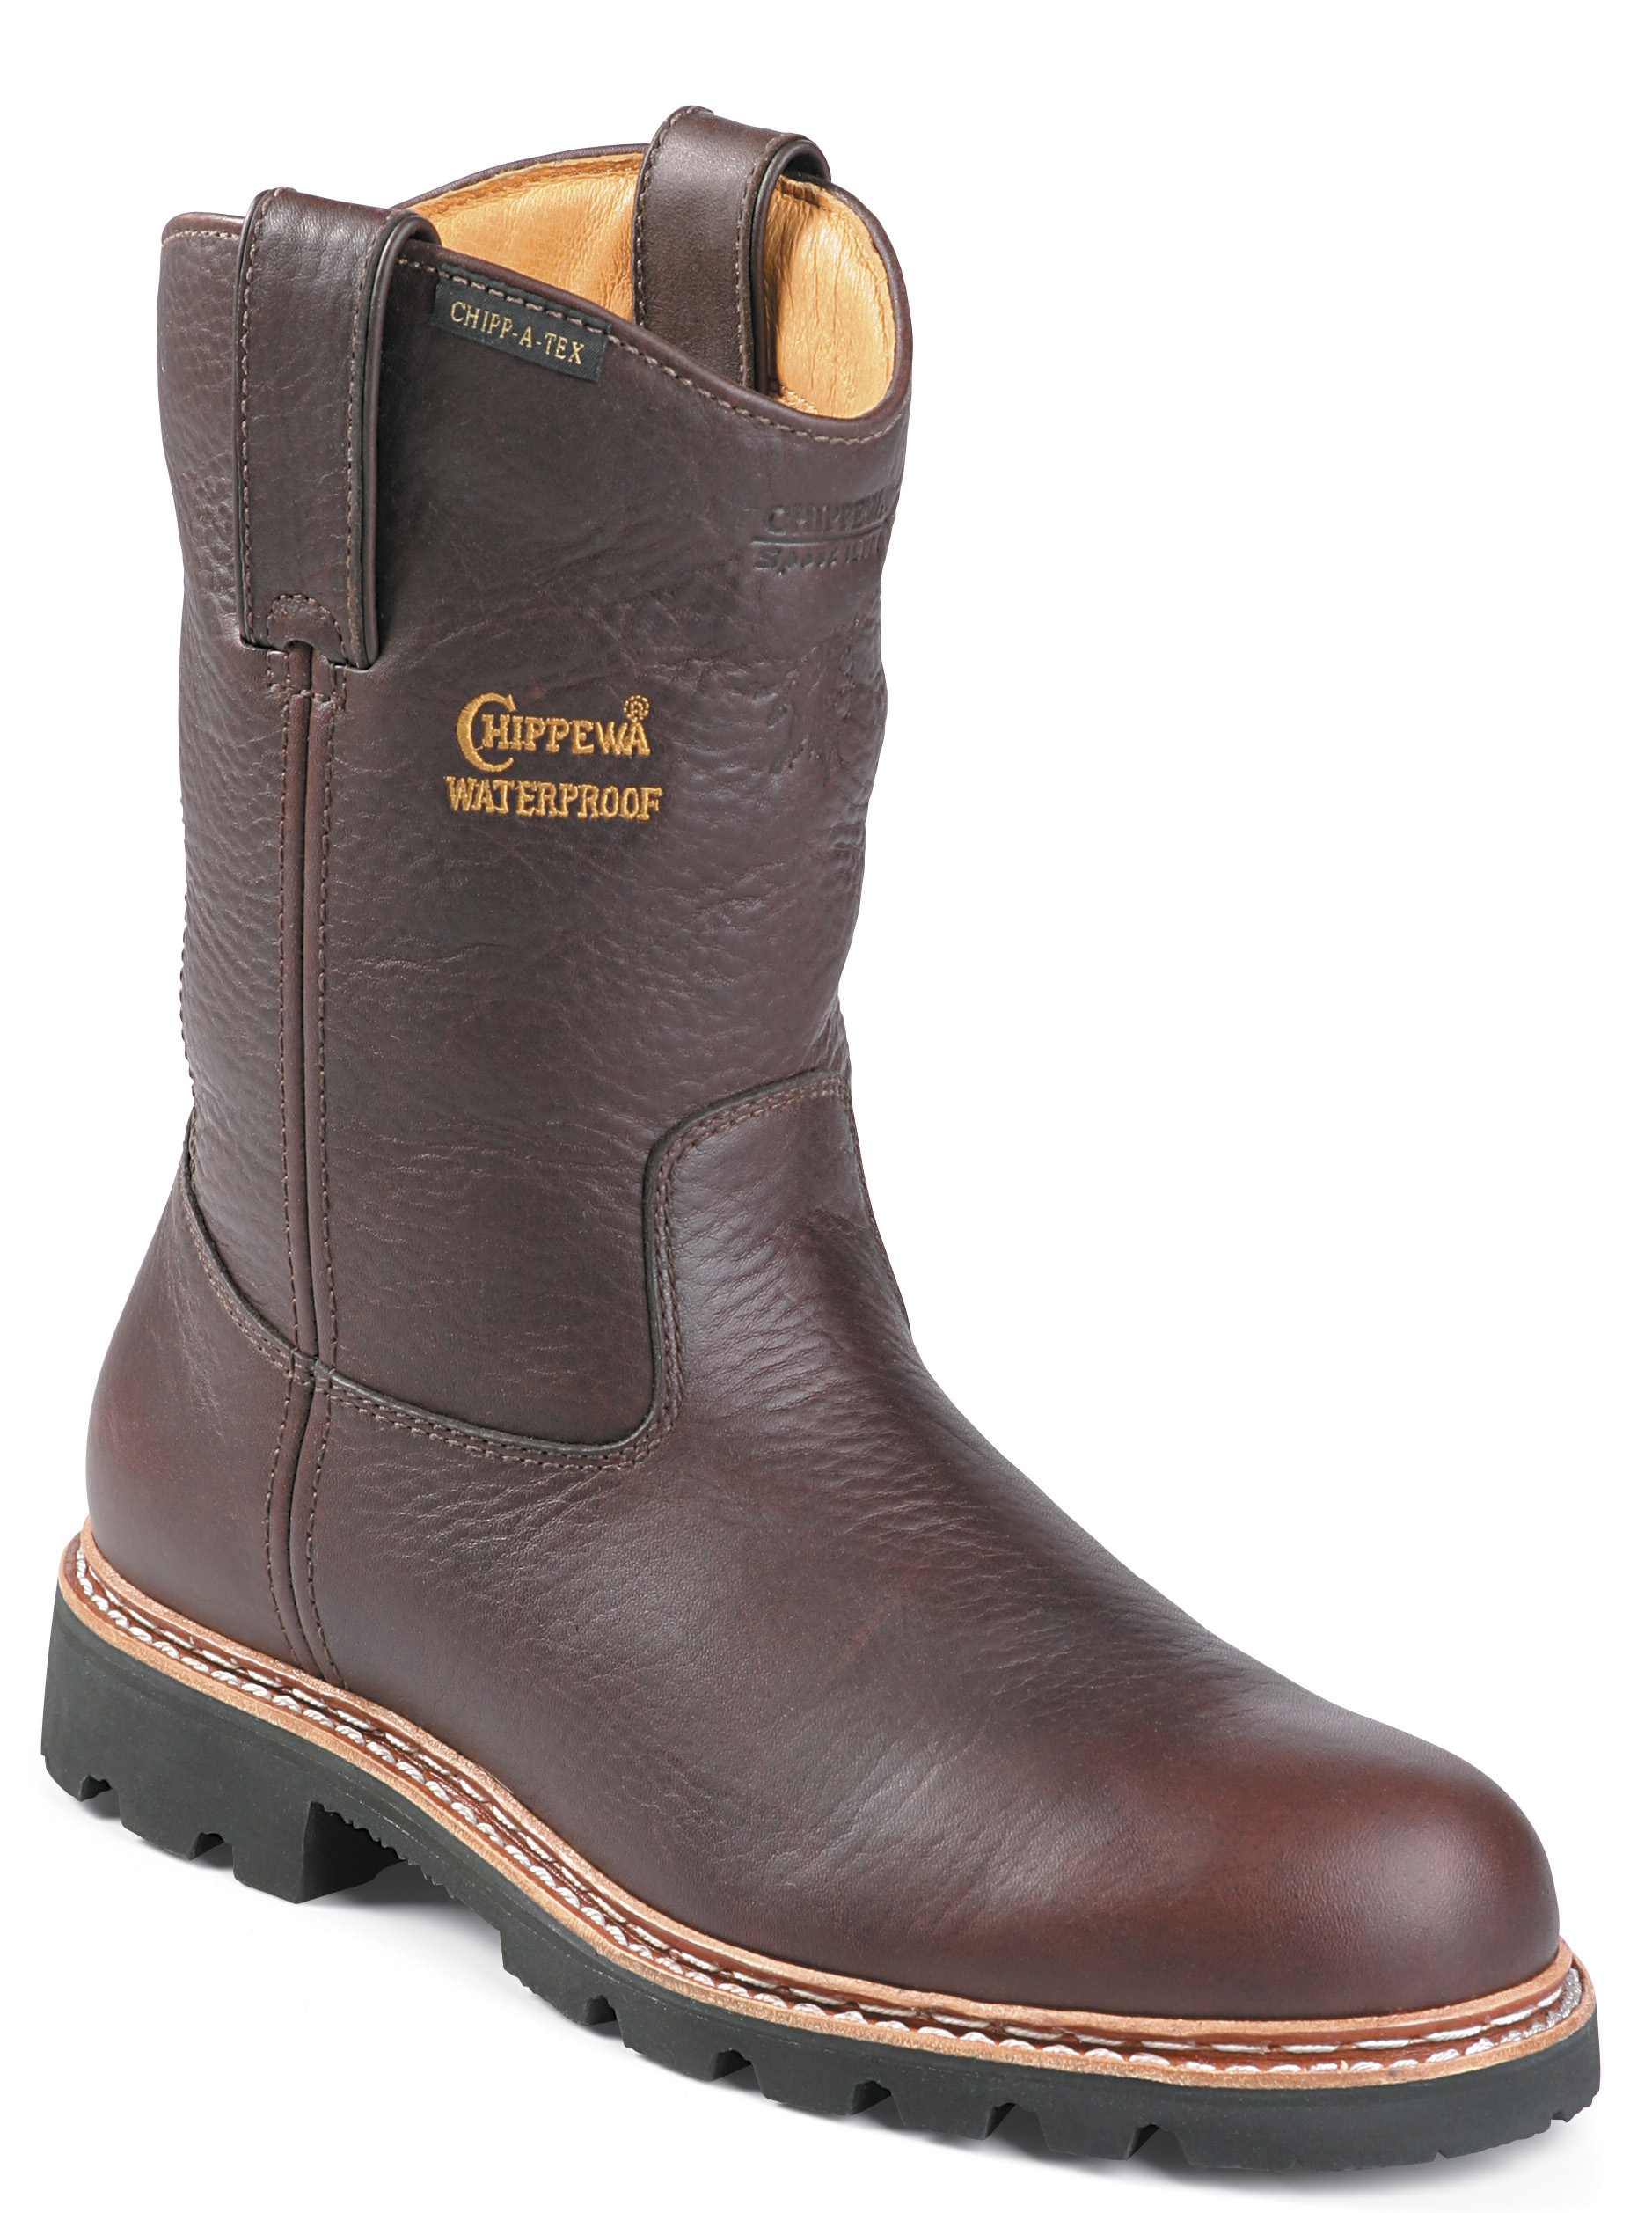 Chippewa Men's Rugged Outdoor Waterproof Work Boots Pull On 25975 Brown Medium